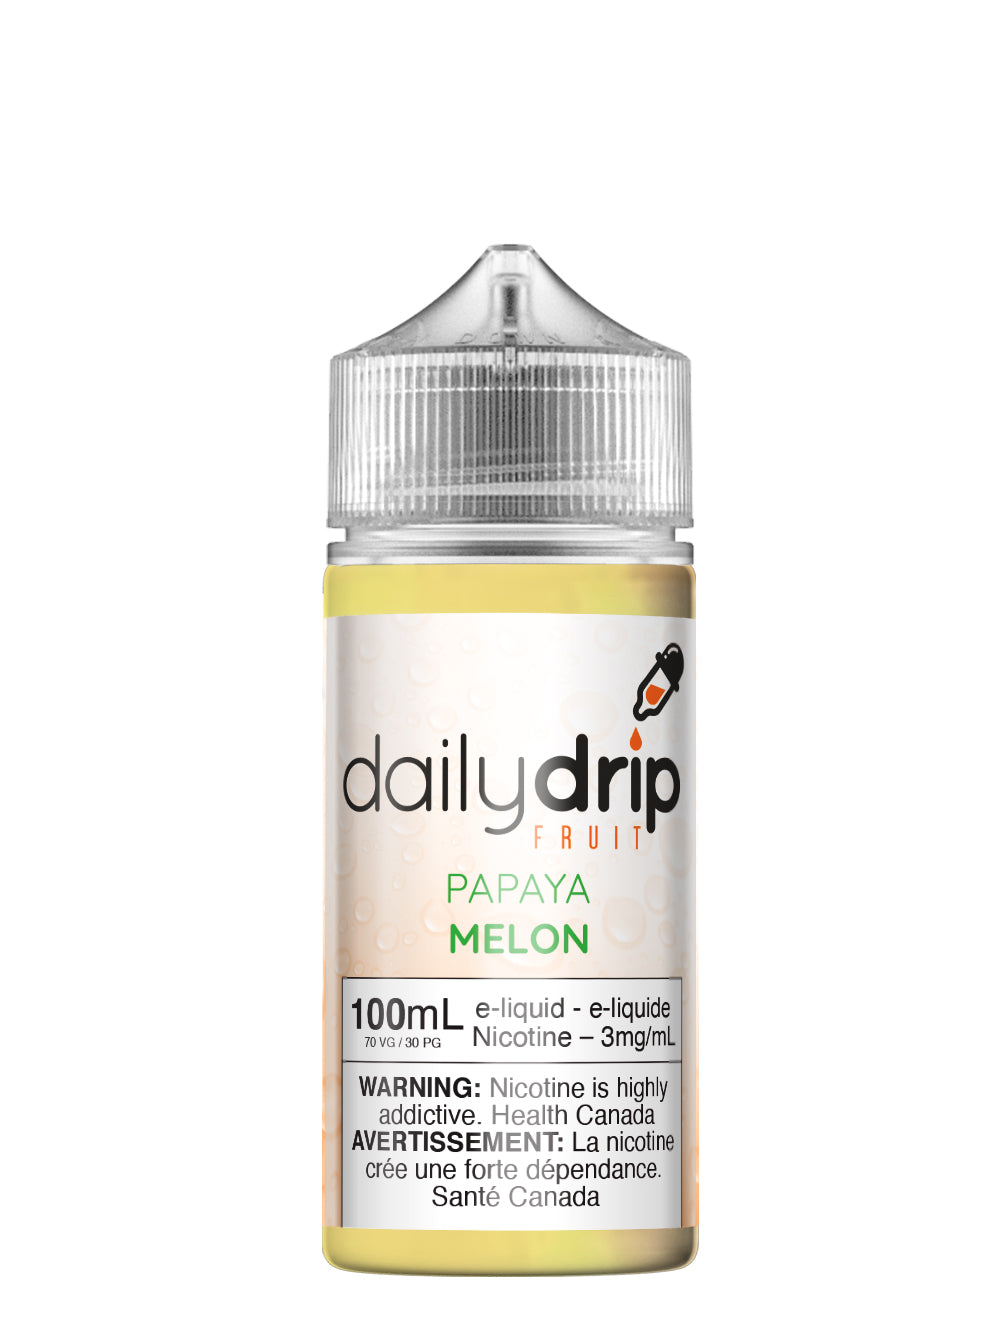 Papaya Melon by Daily Drip 100ml